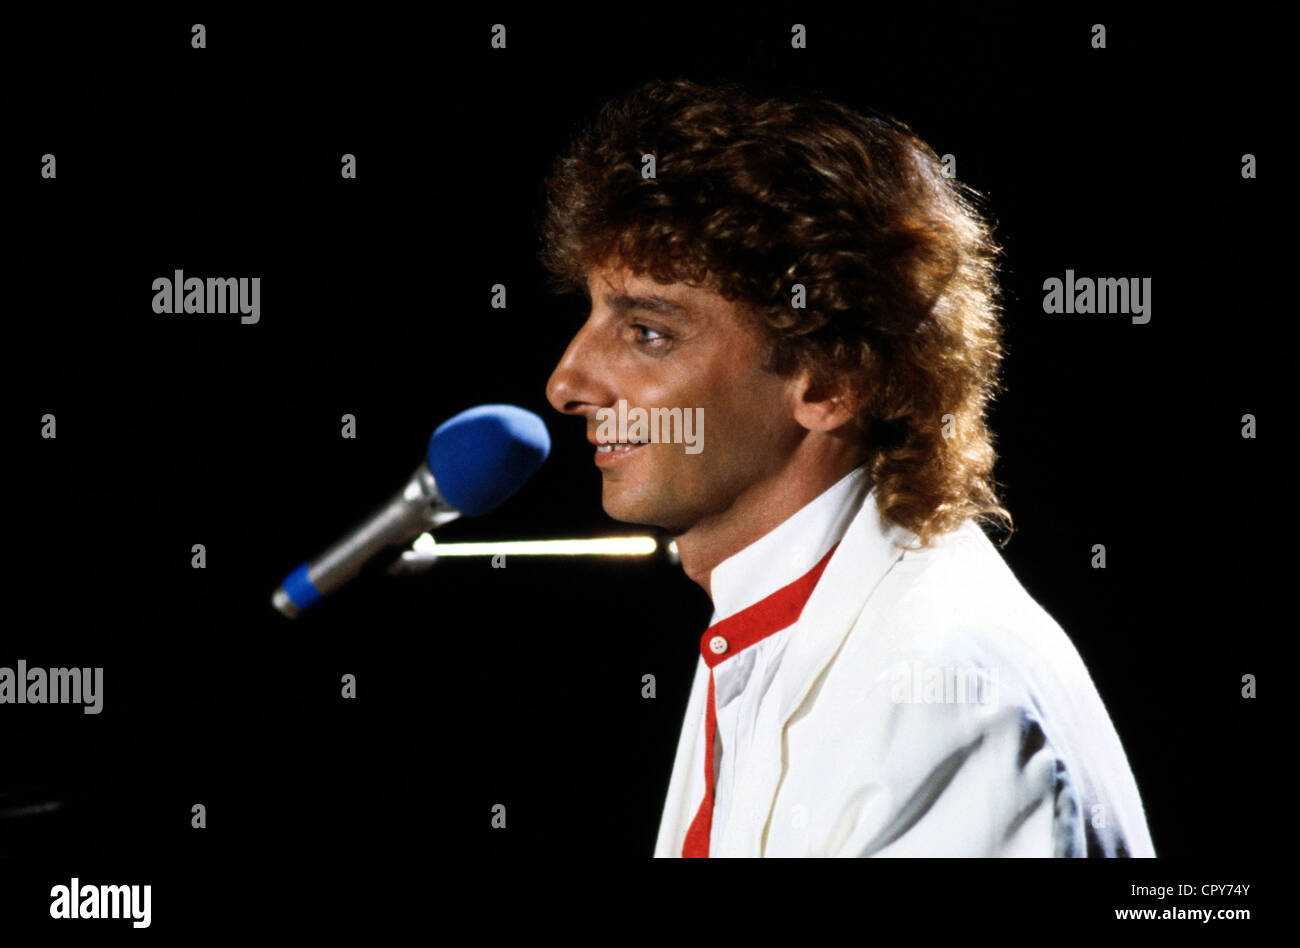 Manilow, Barry (born Barry Alan Pincus), * 17.6.1946, US musician, portrait, during a concert, 1983, microphone, - Stock Image